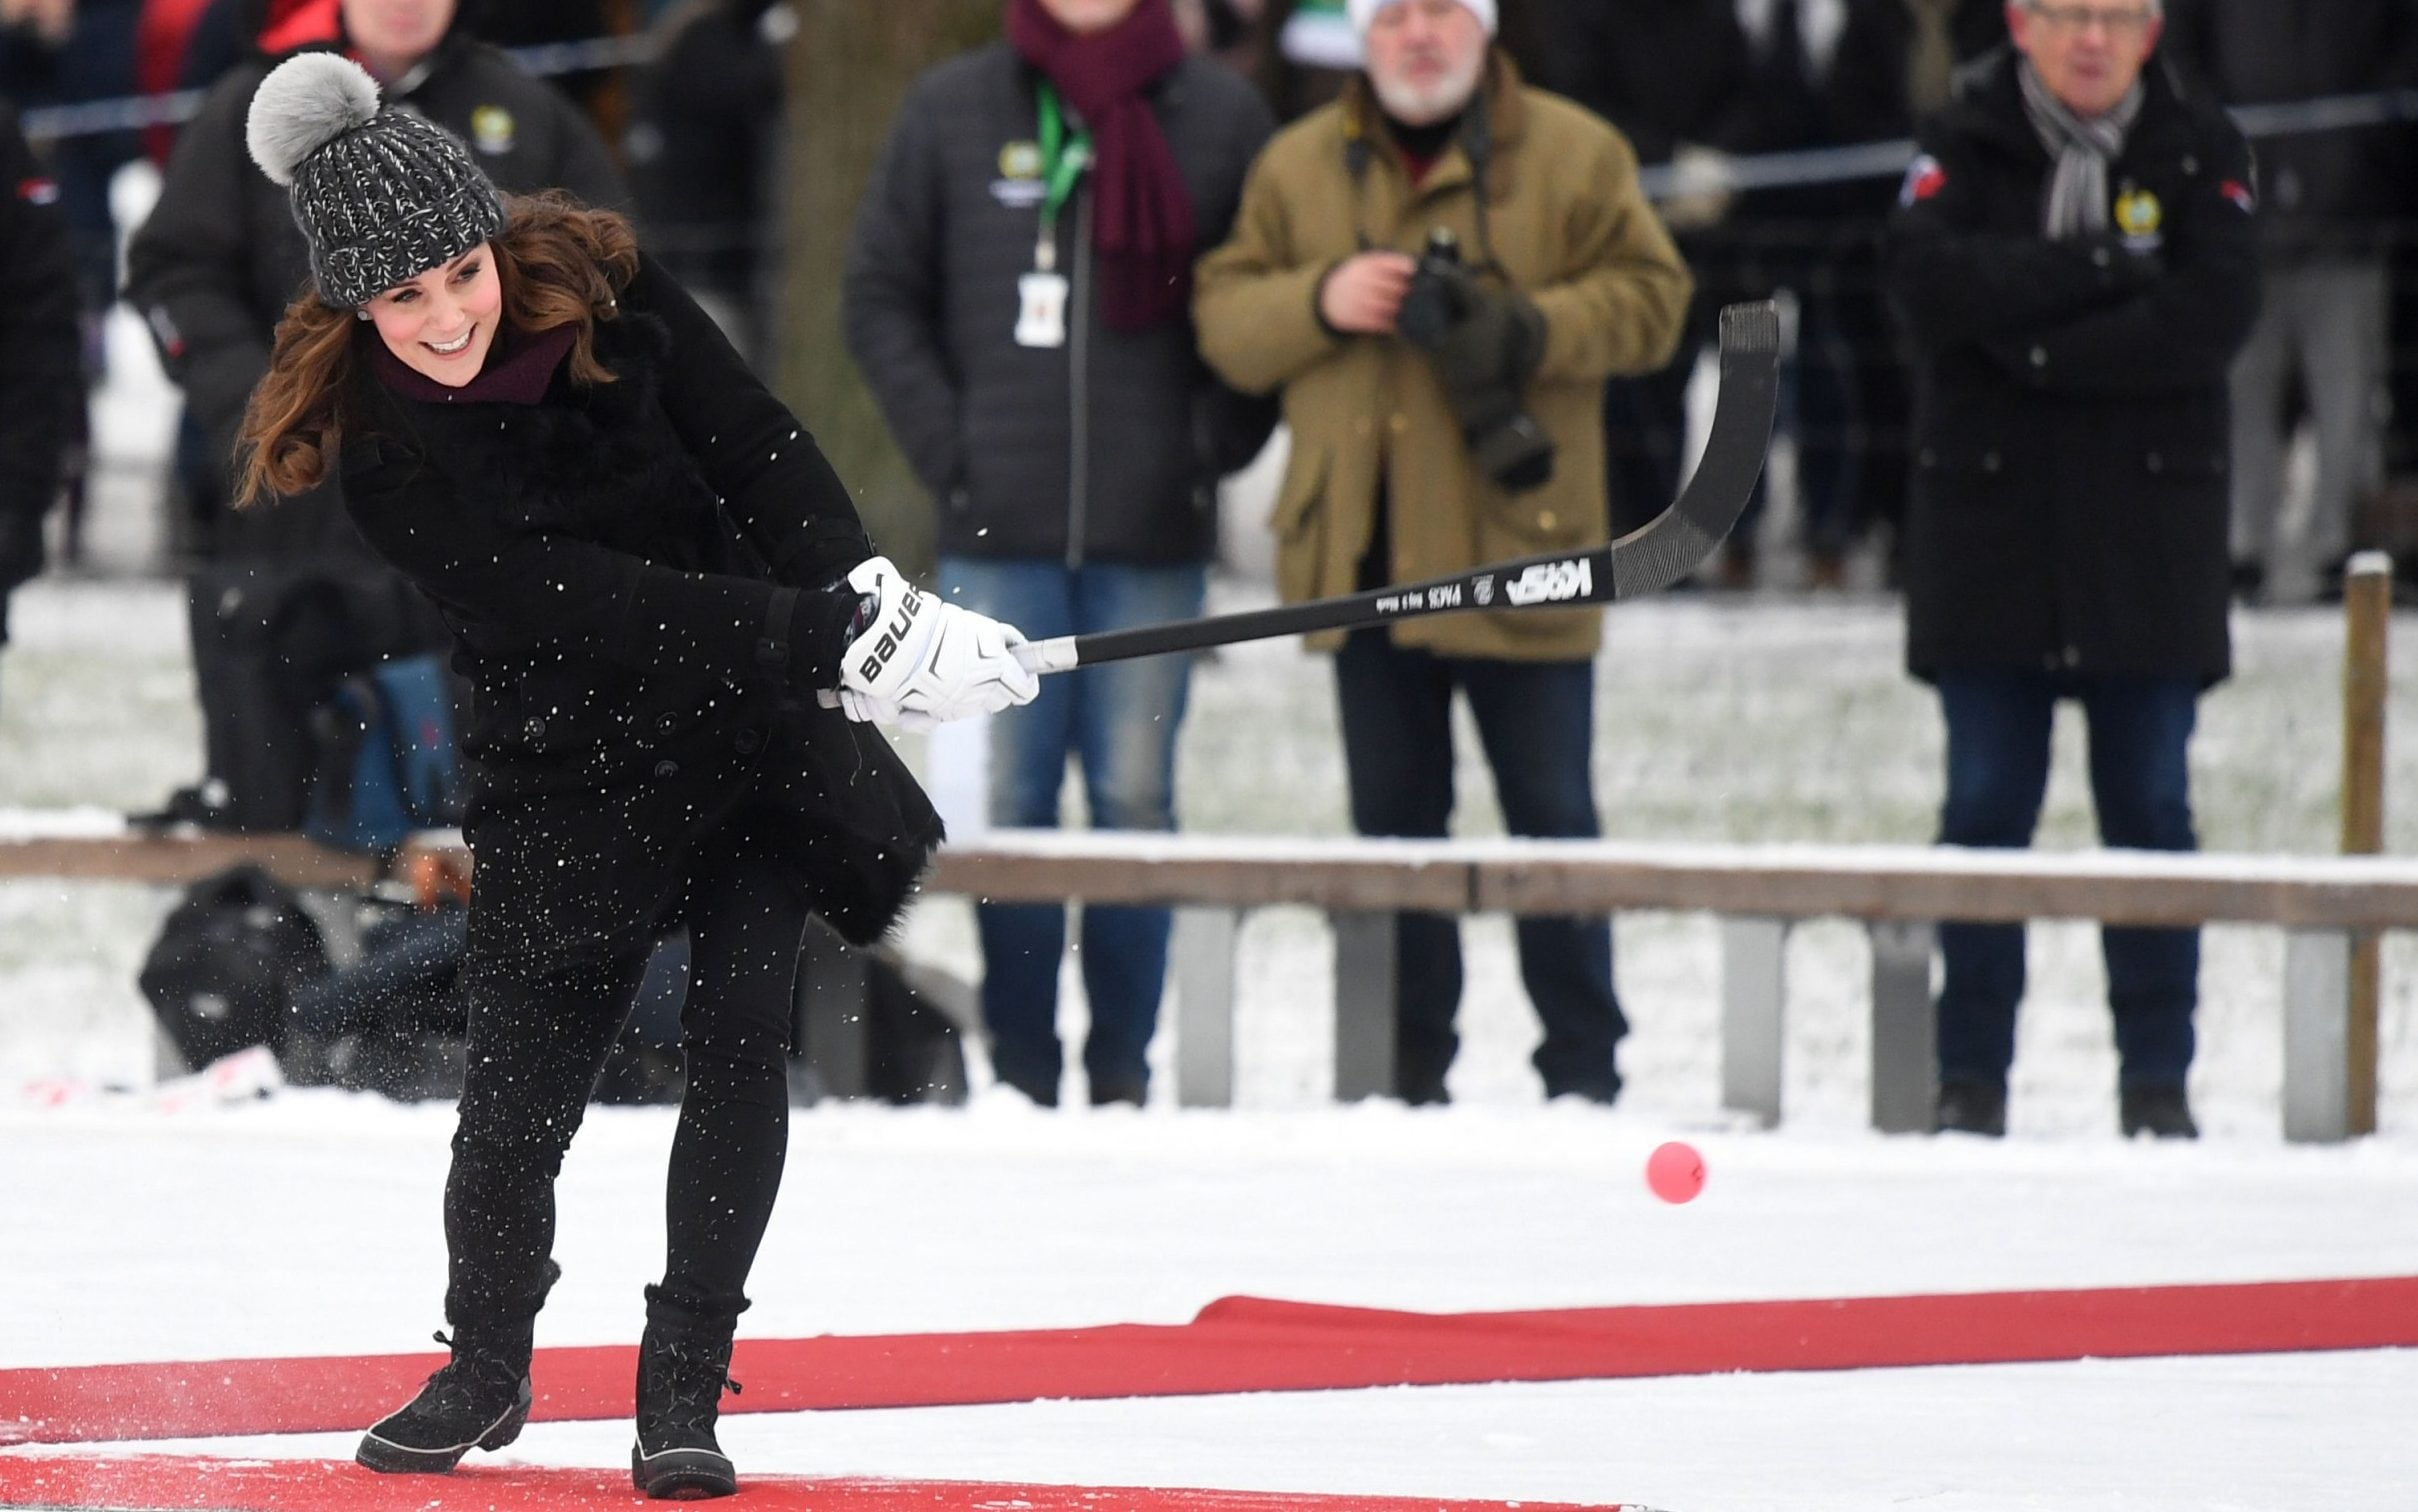 Duchess of Cambridge hits a hockey ball